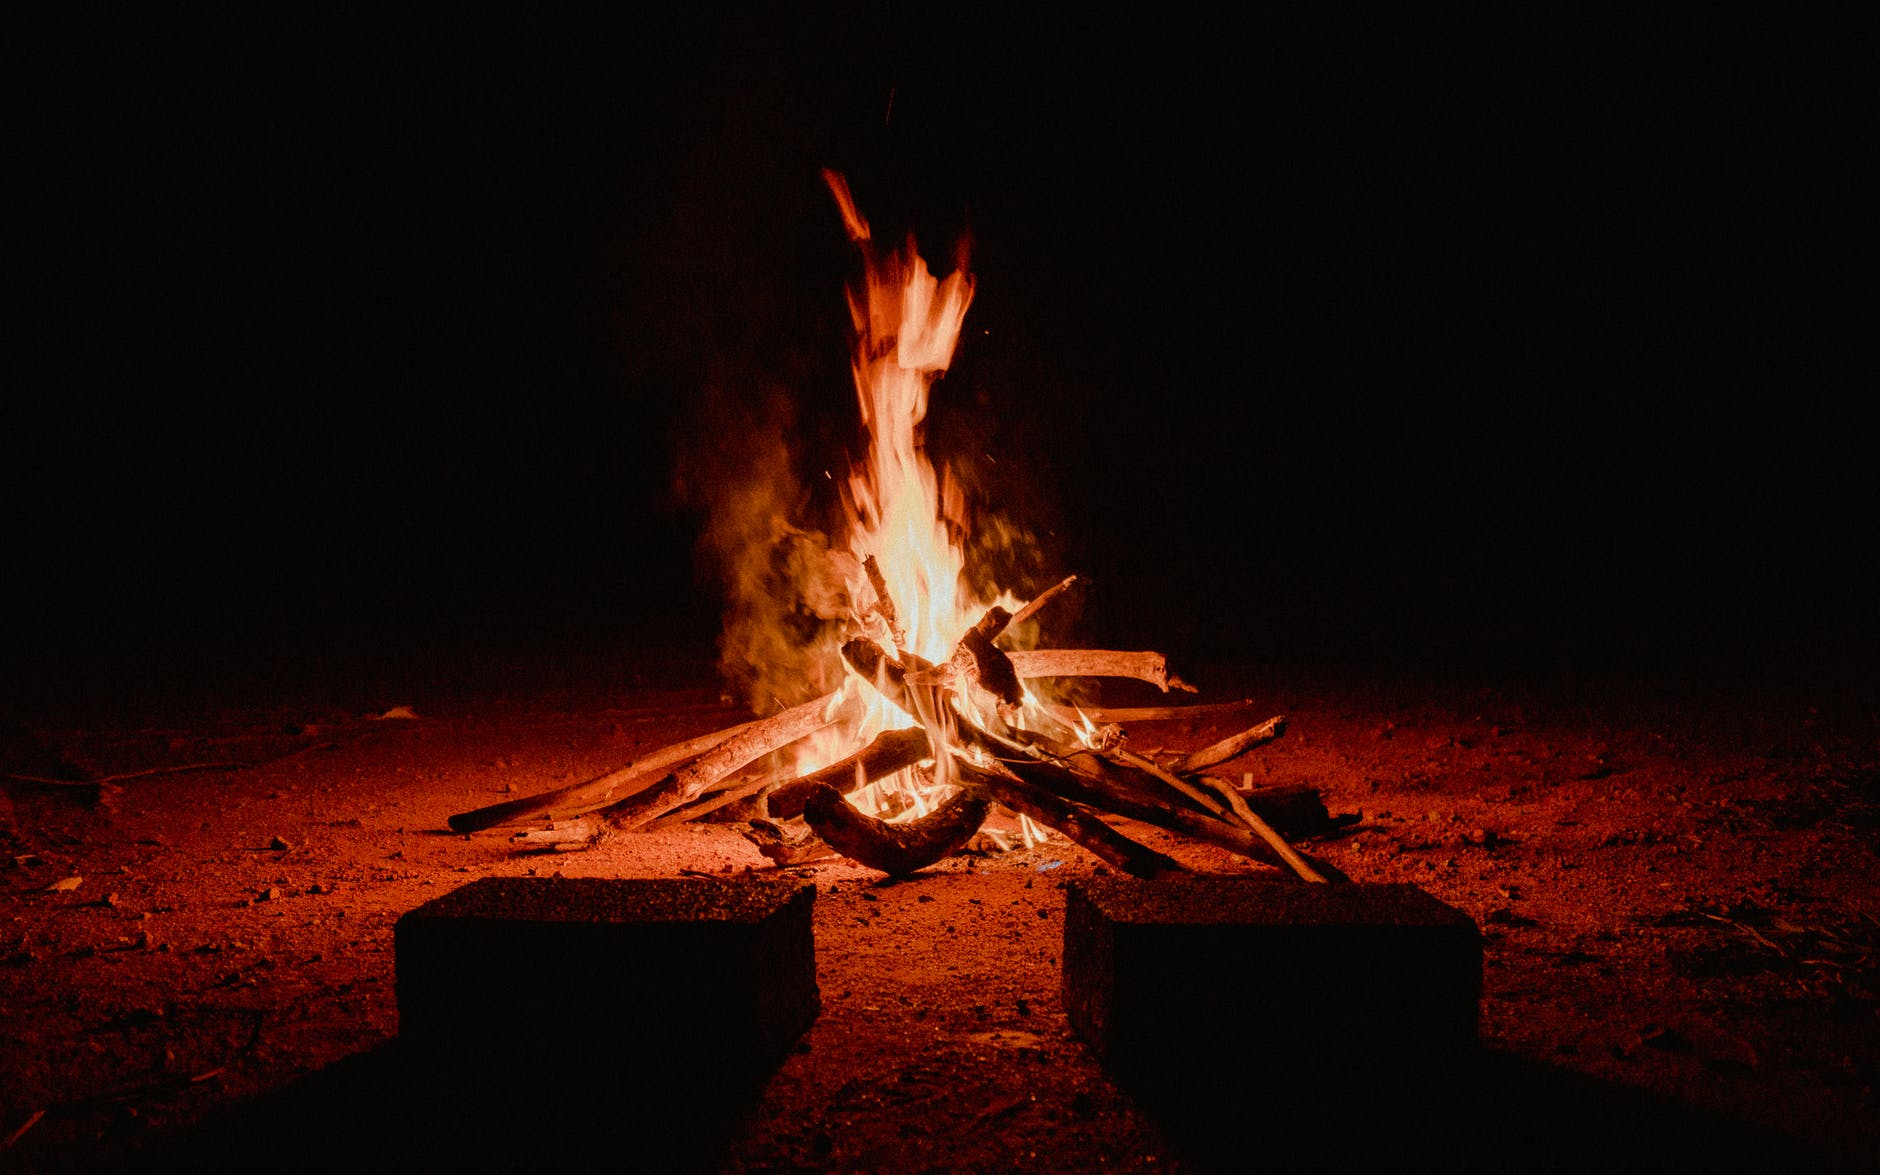 outdoor fireplace during nighttime